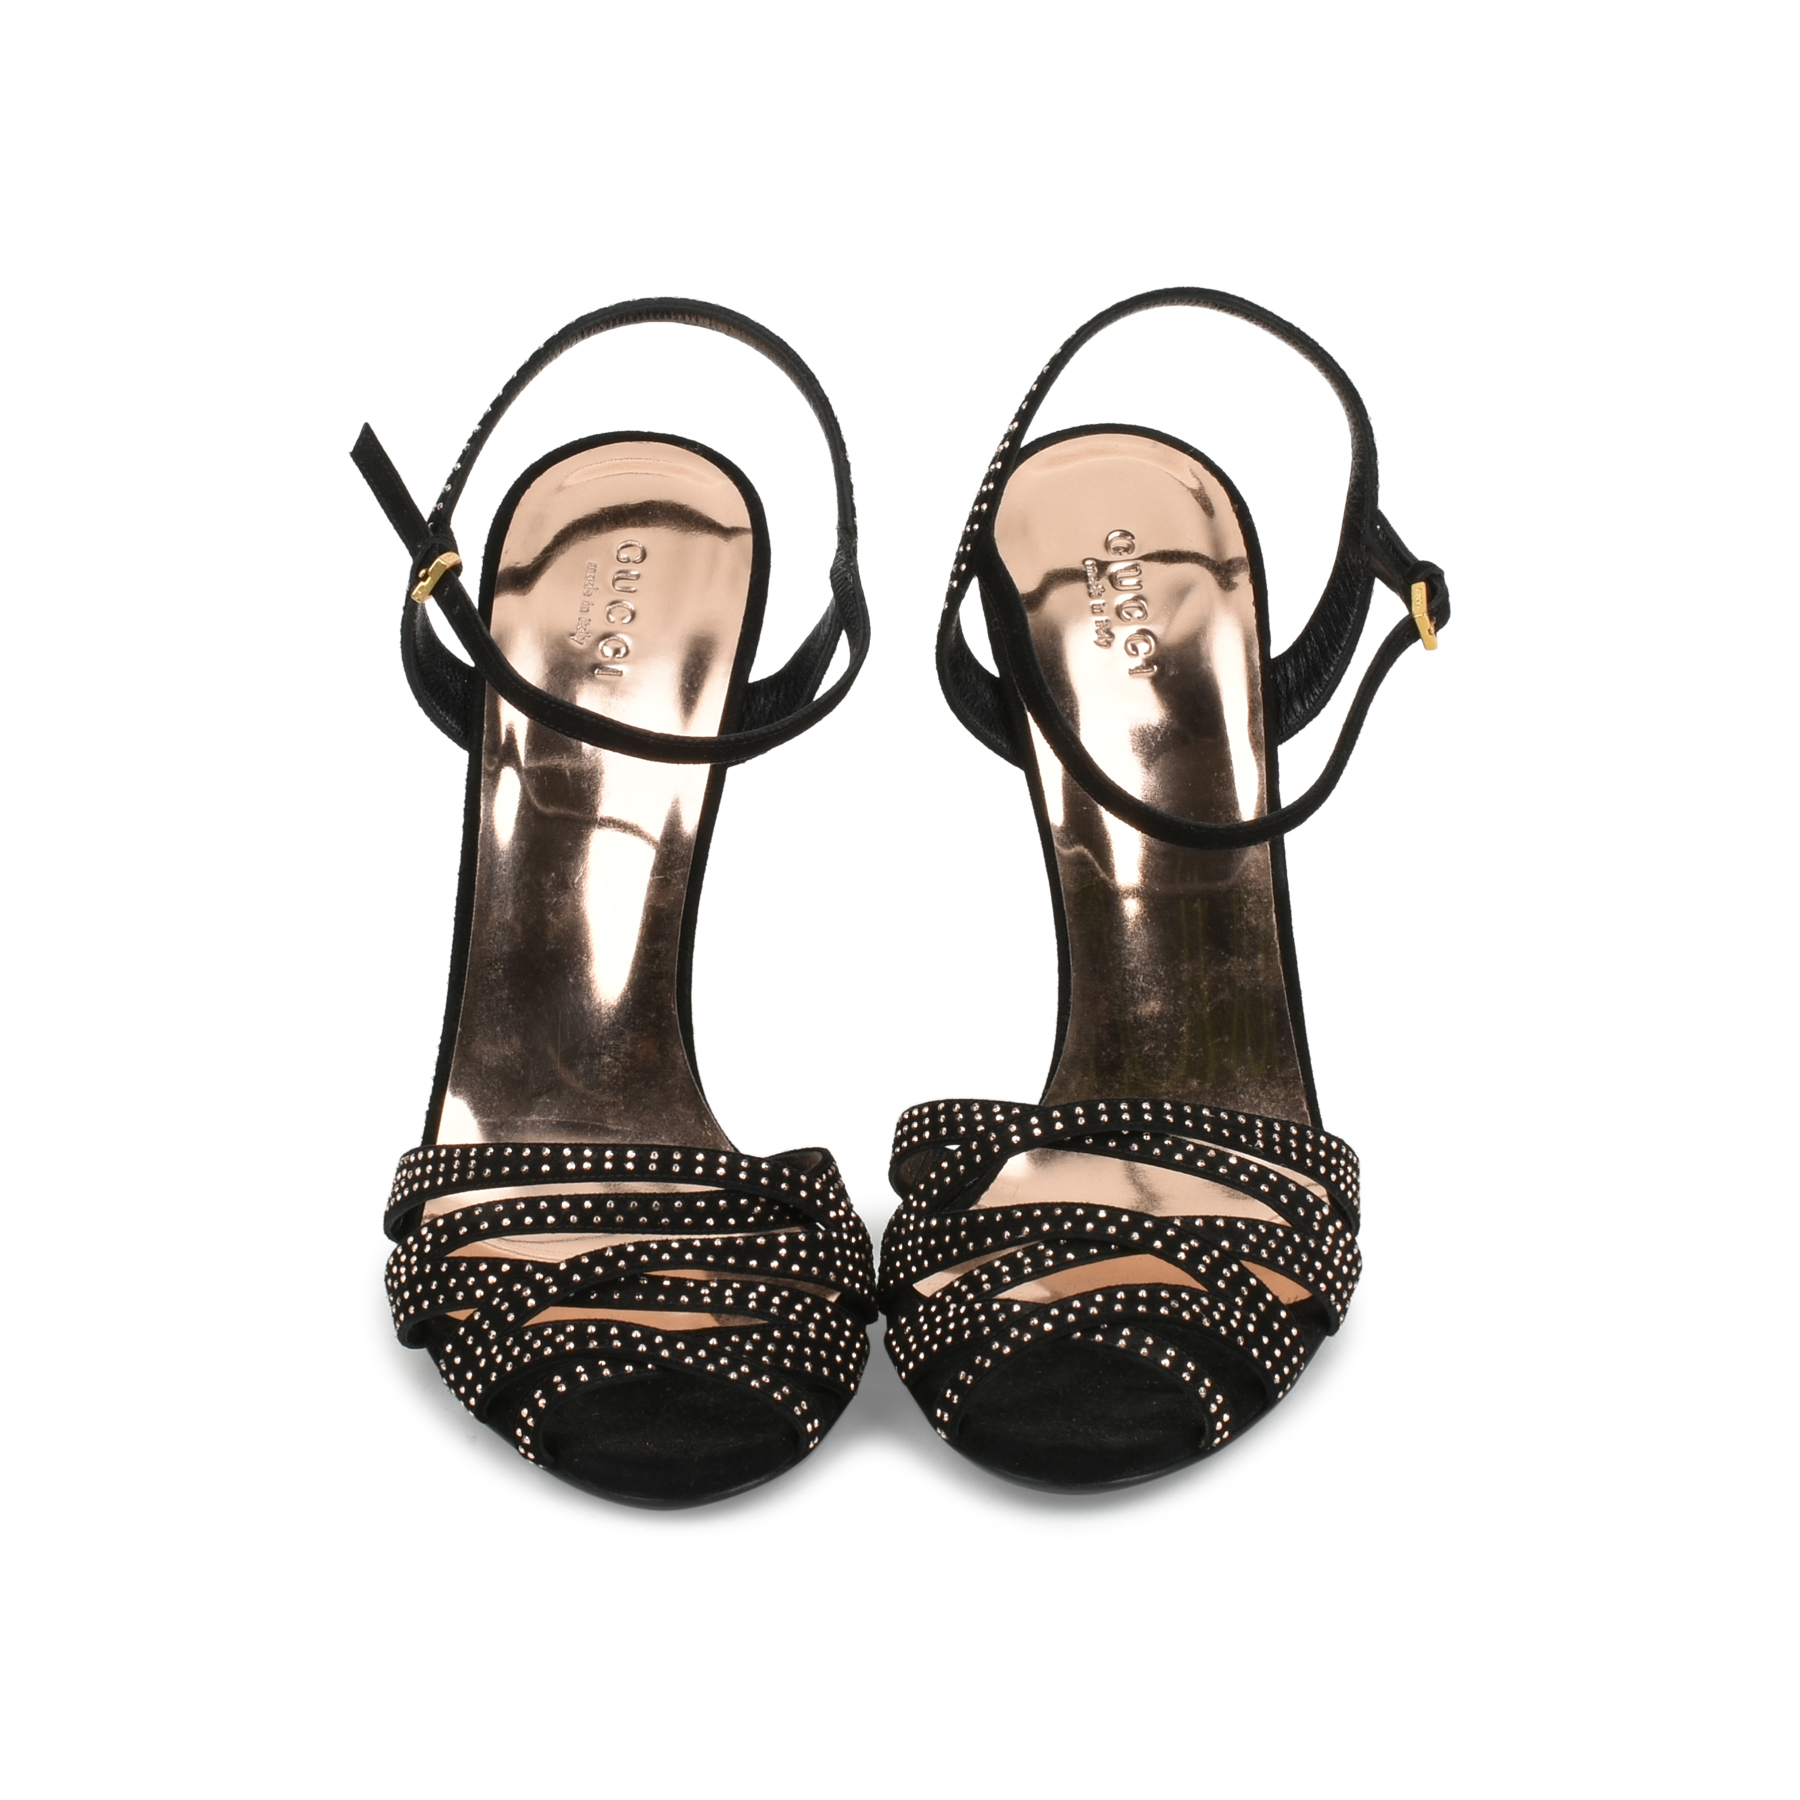 cc56d18ecdcc Authentic Second Hand Gucci Studded Multi-Strap Sandals (PSS-443-00001)